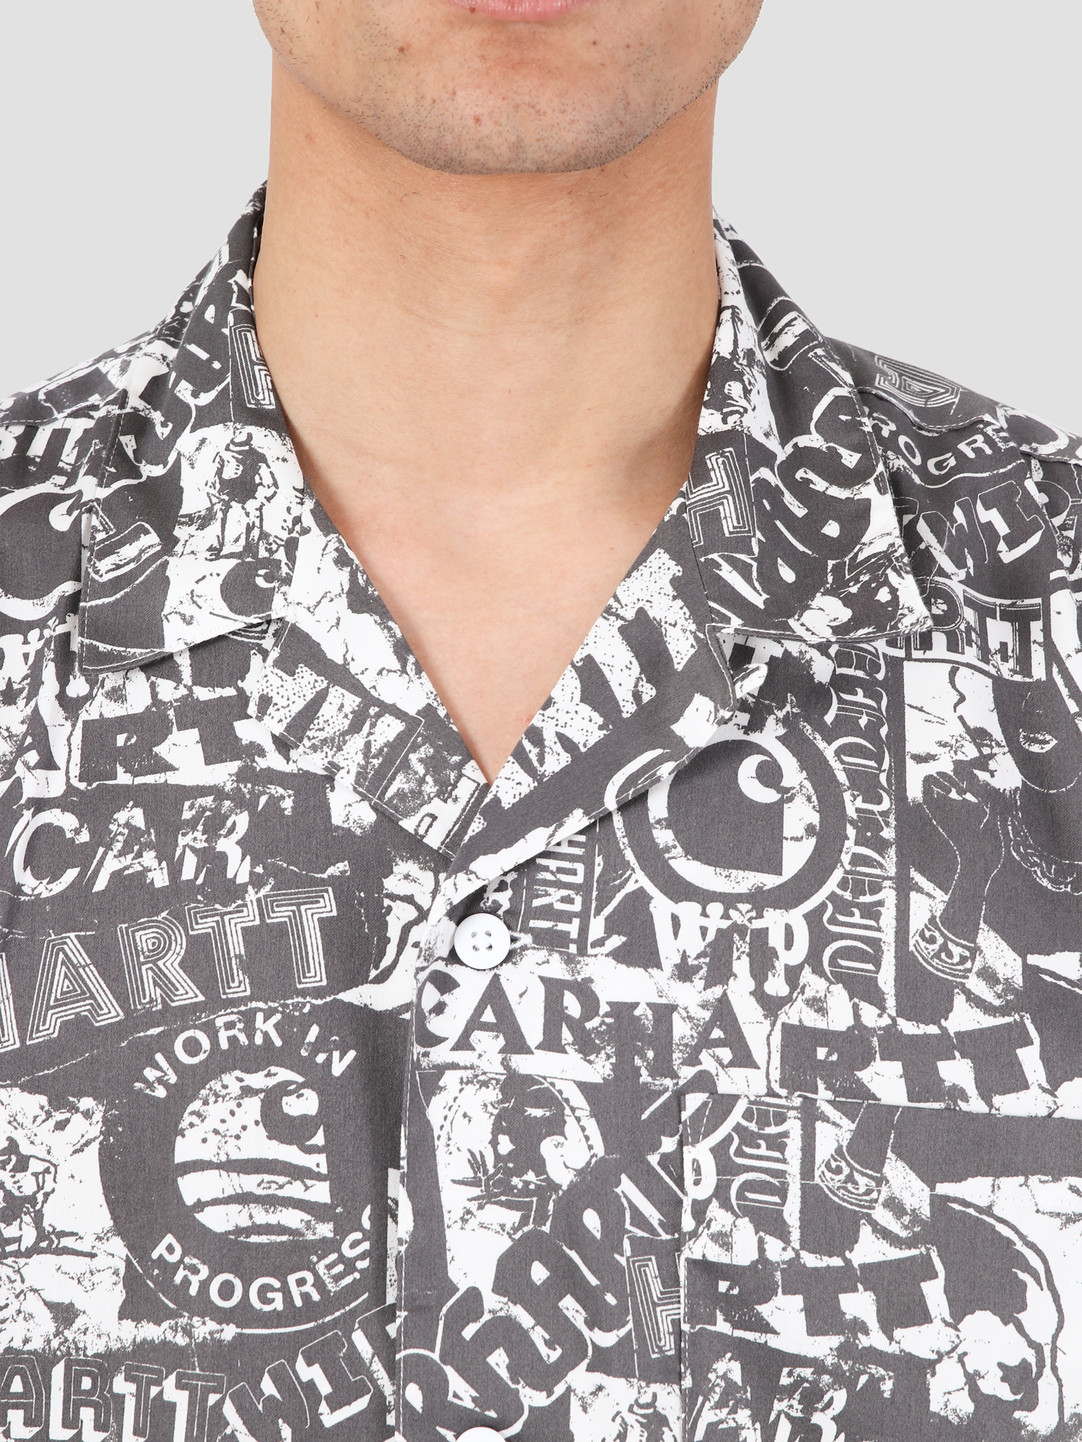 Carhartt WIP Carhartt WIP Collage Short Sleeve Shirt Collage Print Black White I027532-09M00